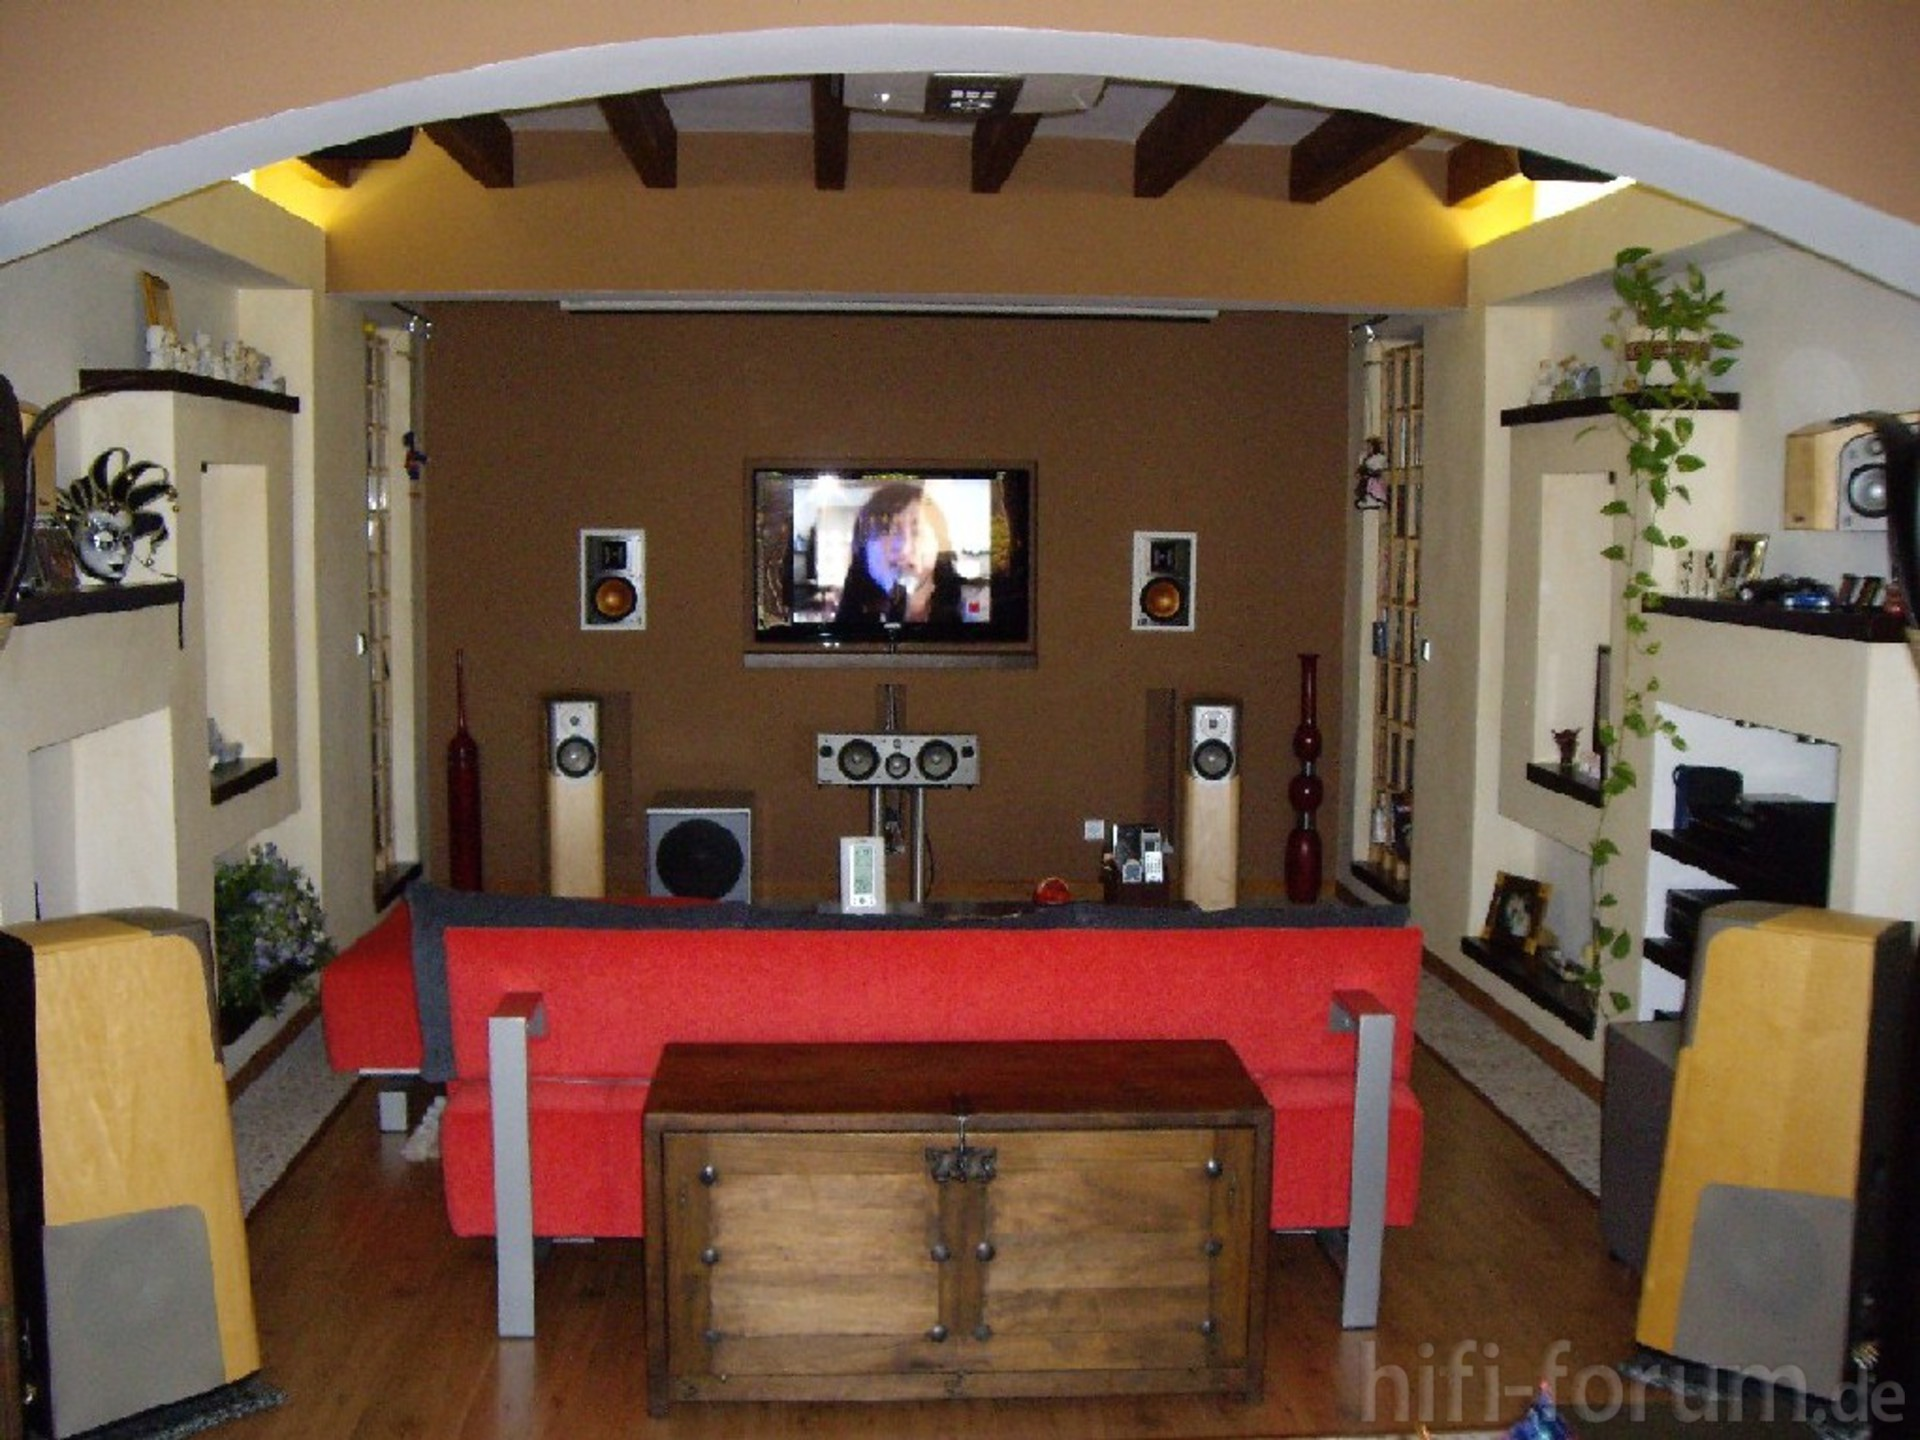 wohnzimmer heimkino 1 heimkino surround hifi bildergalerie. Black Bedroom Furniture Sets. Home Design Ideas